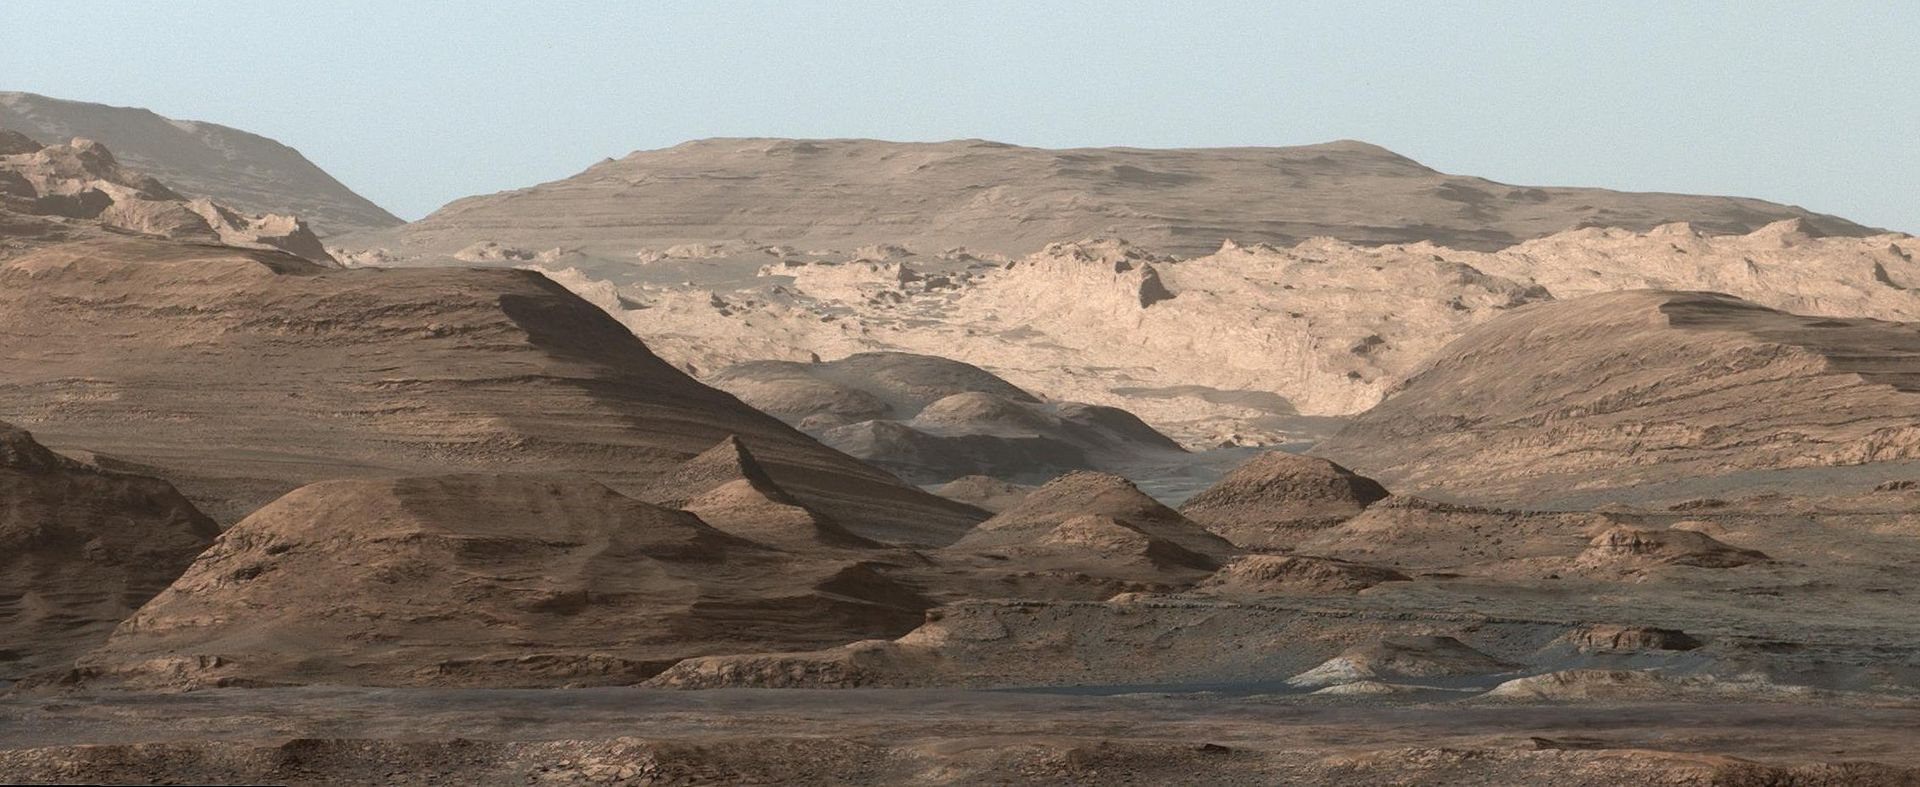 Image of Mount Sharp taken by the Curiosity rover on Aug. 23rd, 2012. The layers at the base of Mt. Sharp show the geological history of Mars. - Image Credit: NASA/JPL-Caltech/MSSS.